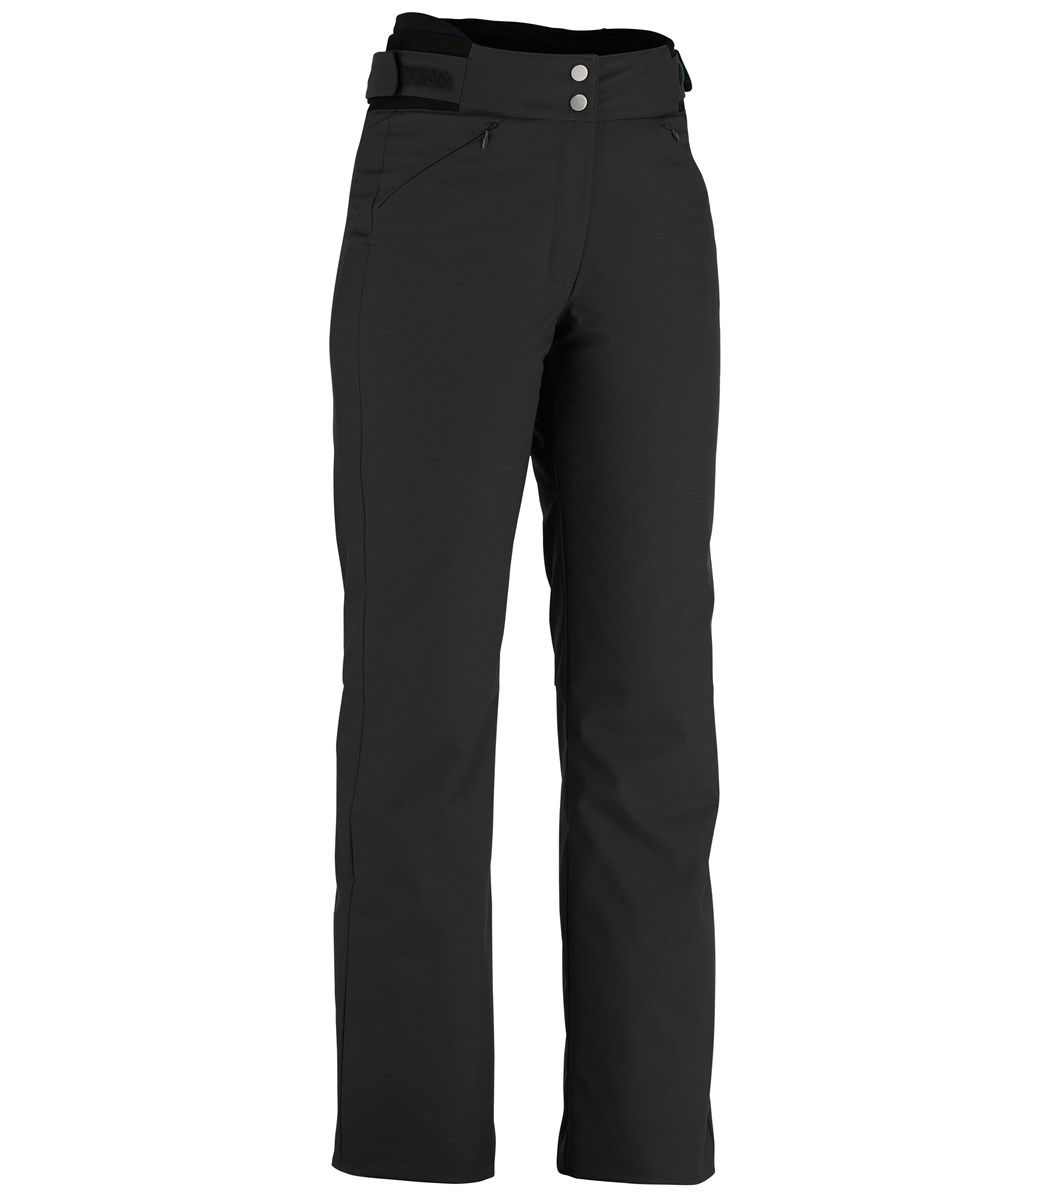 Killy Eyeliner Womens Ski Pants in Black £249.95 1e3671e7e